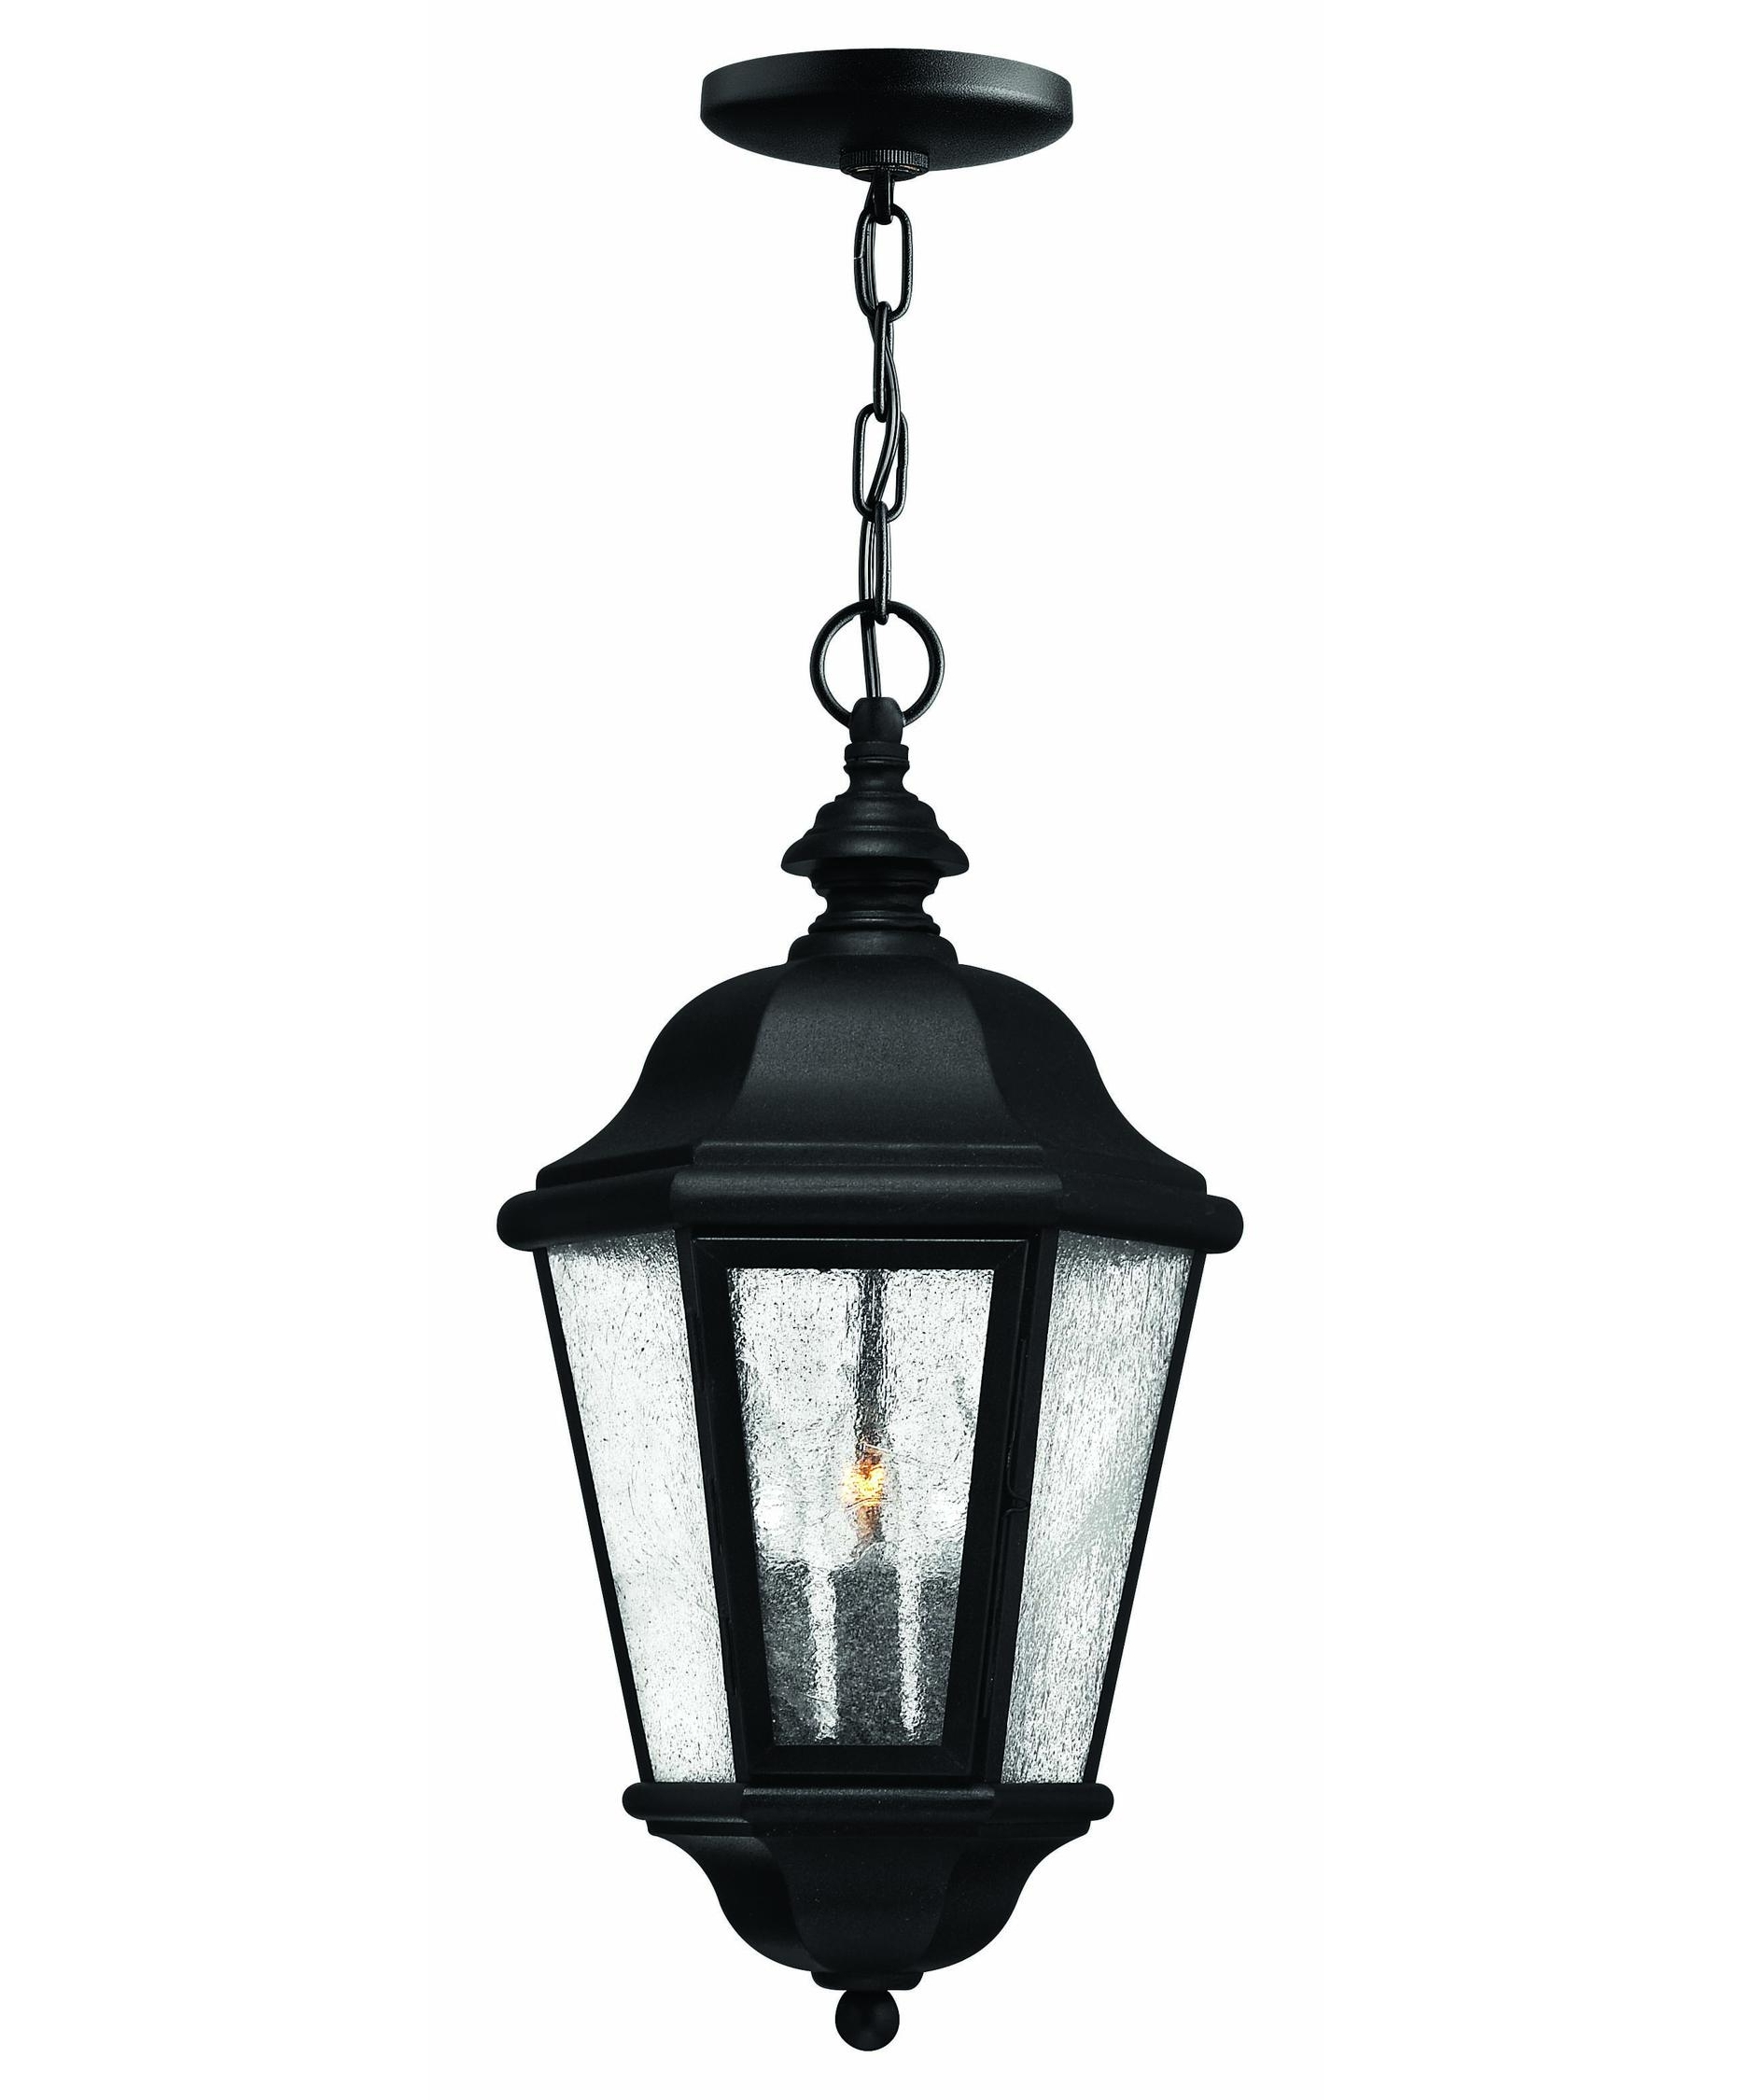 2019 Hinkley Lighting 1672 Edgewater 10 Inch Wide 3 Light Outdoor Hanging Intended For Outdoor Hanging Lantern Lights (View 2 of 20)